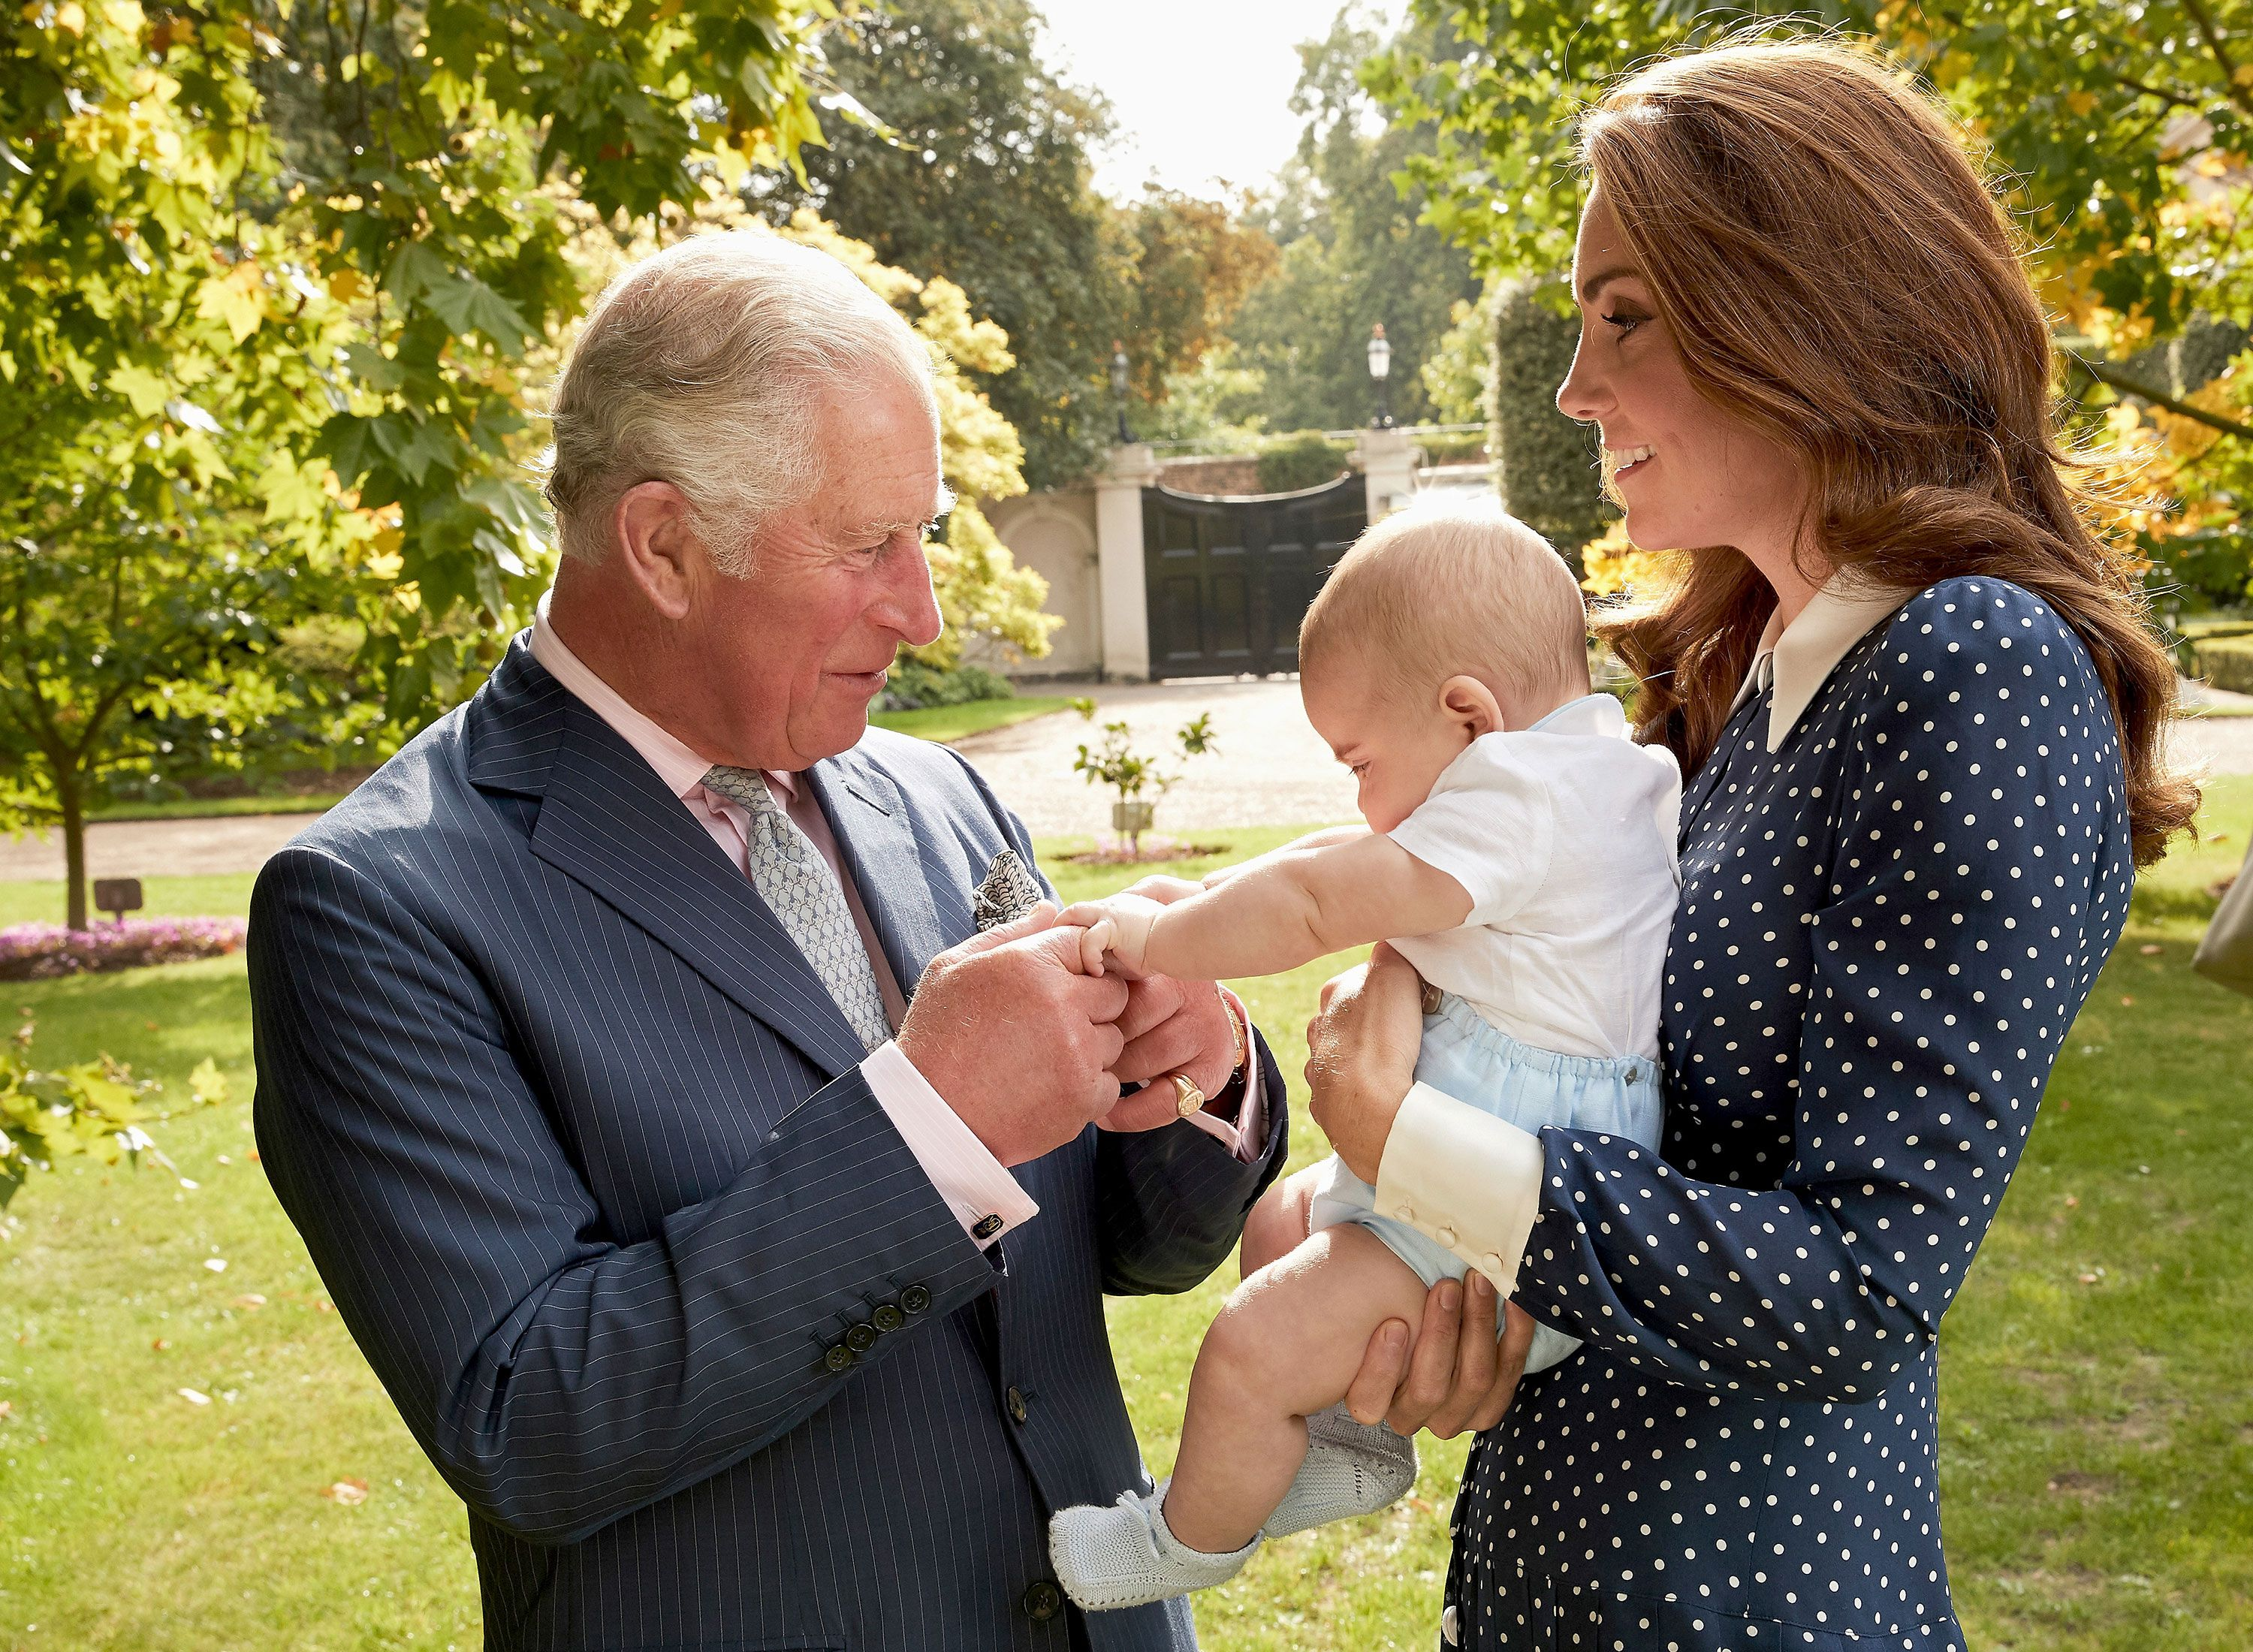 More photographs of Prince Louis have been released